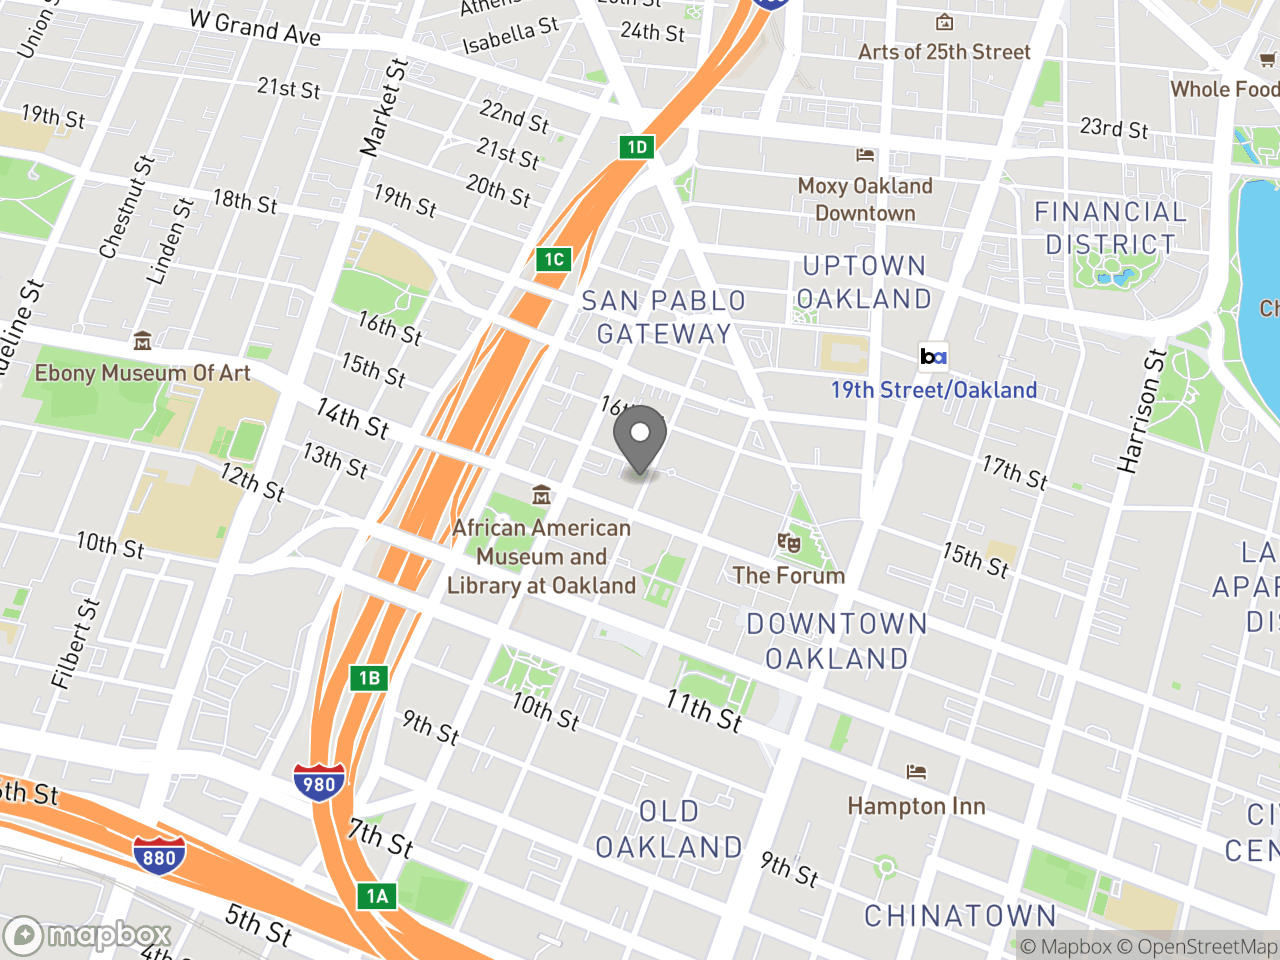 Map location for Impact Fees, located at 250 Frank H Ogawa Plaza in Oakland, CA 94612